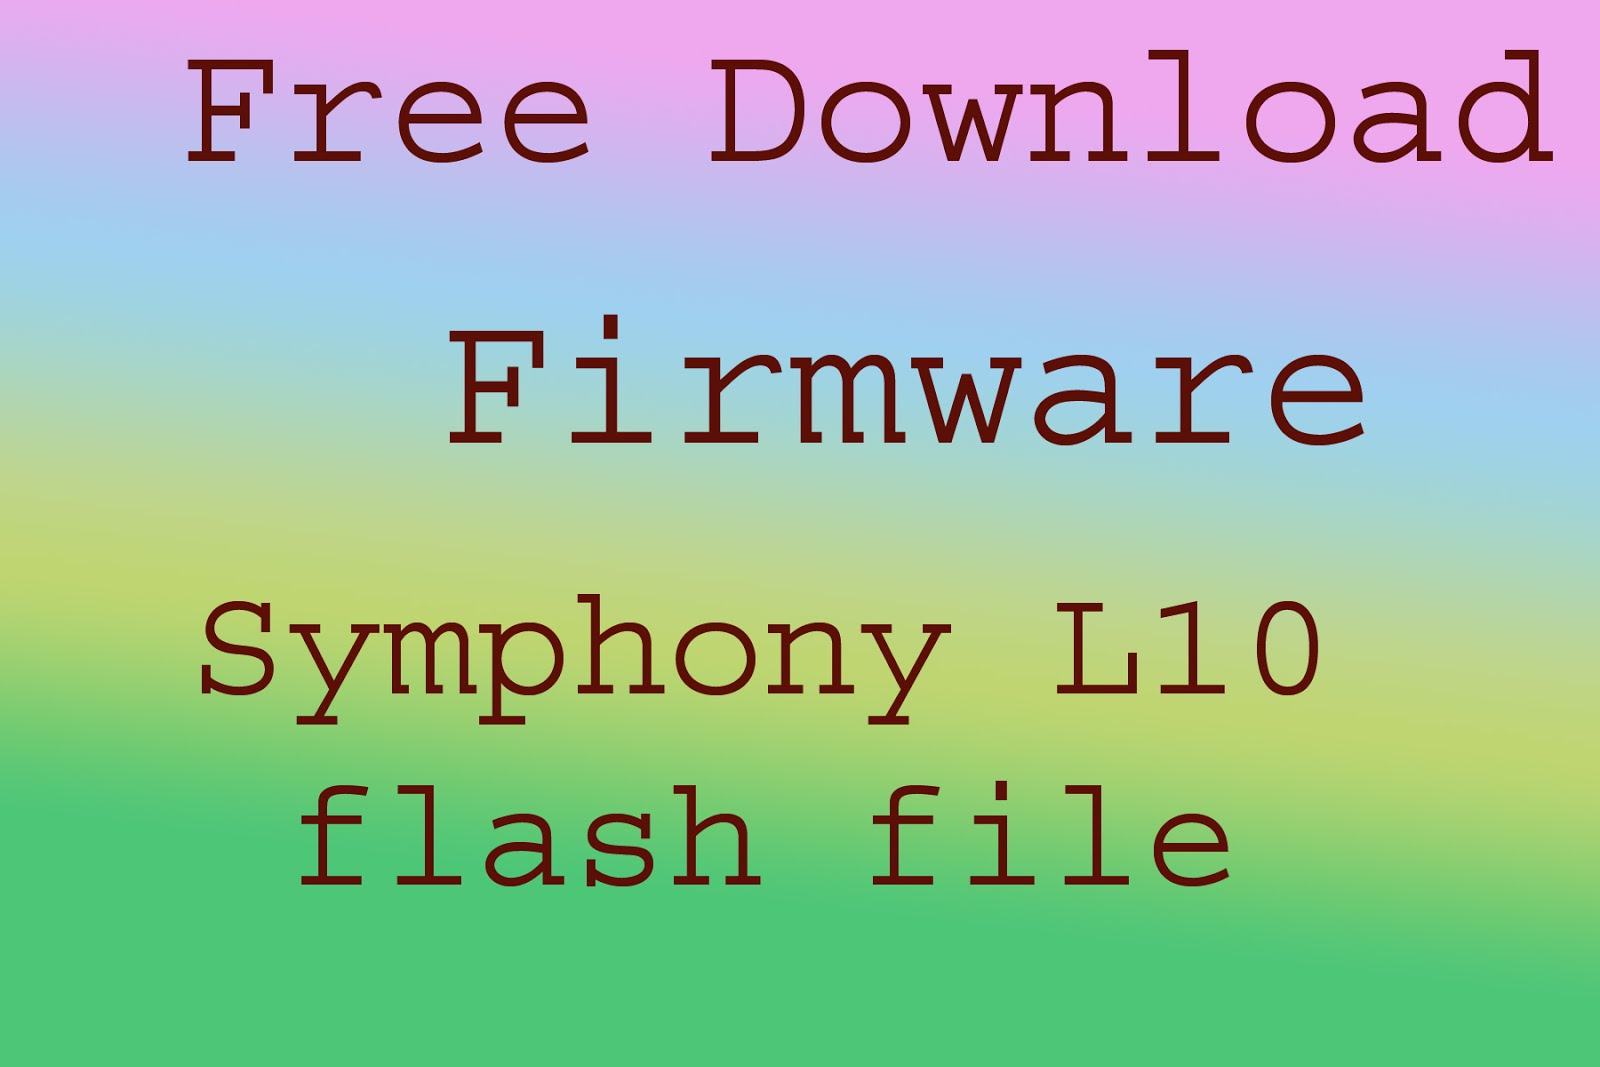 Symphony L10 firmware (Flash file) 100% Tested